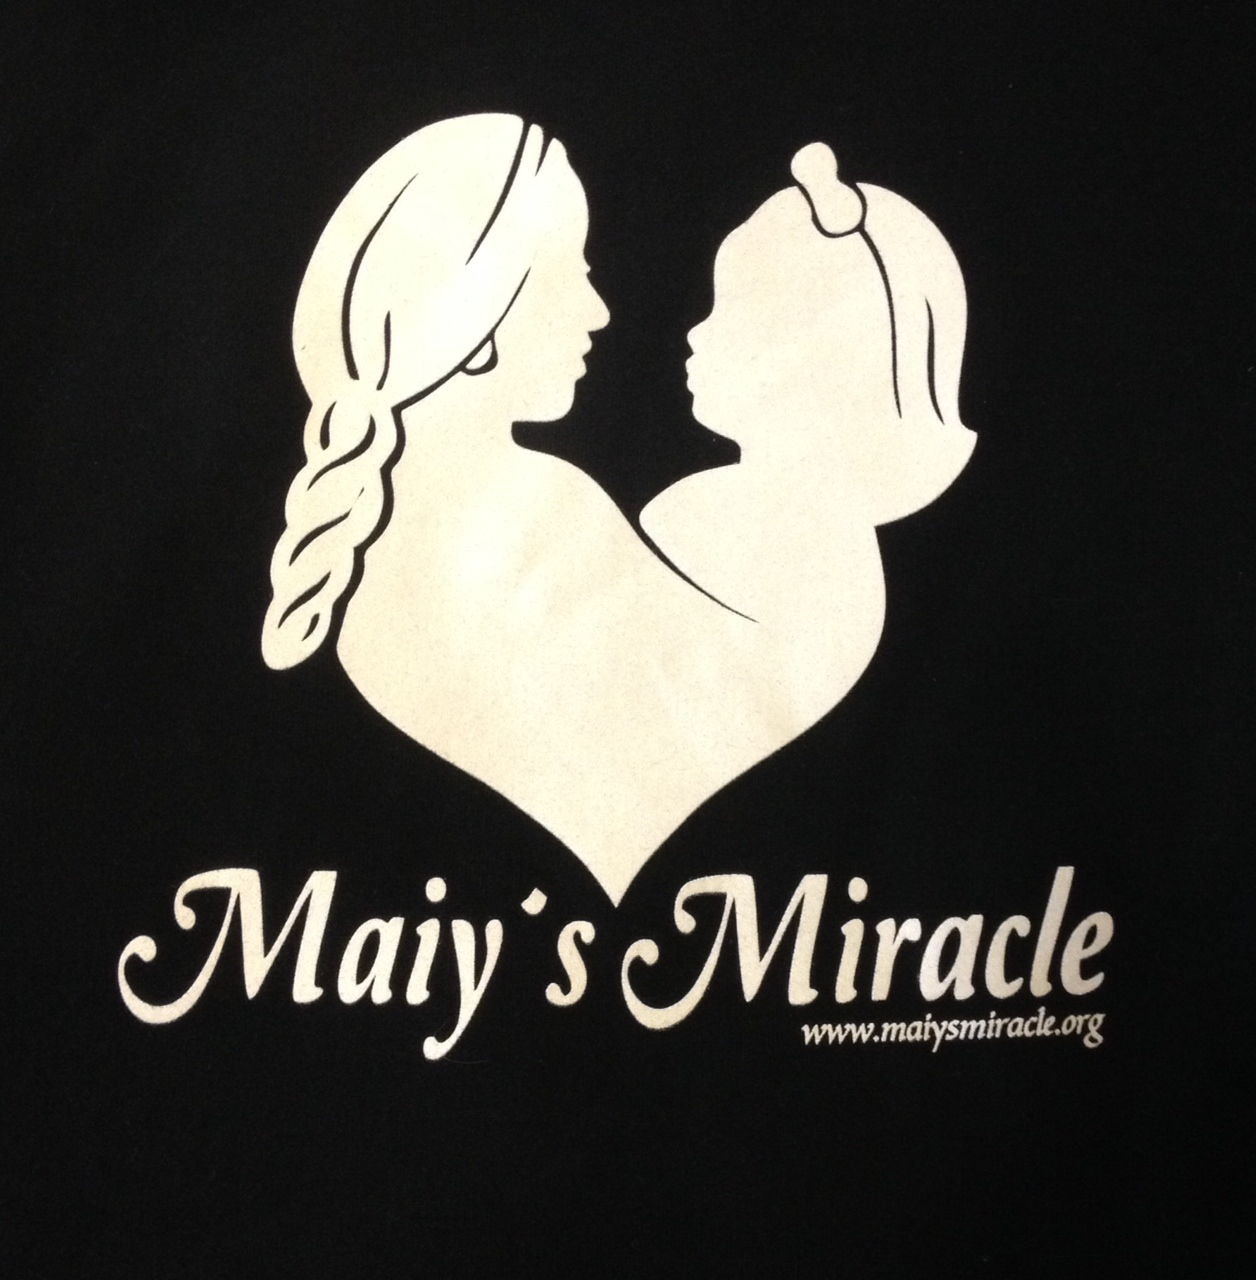 Maiy's Miracle Merch